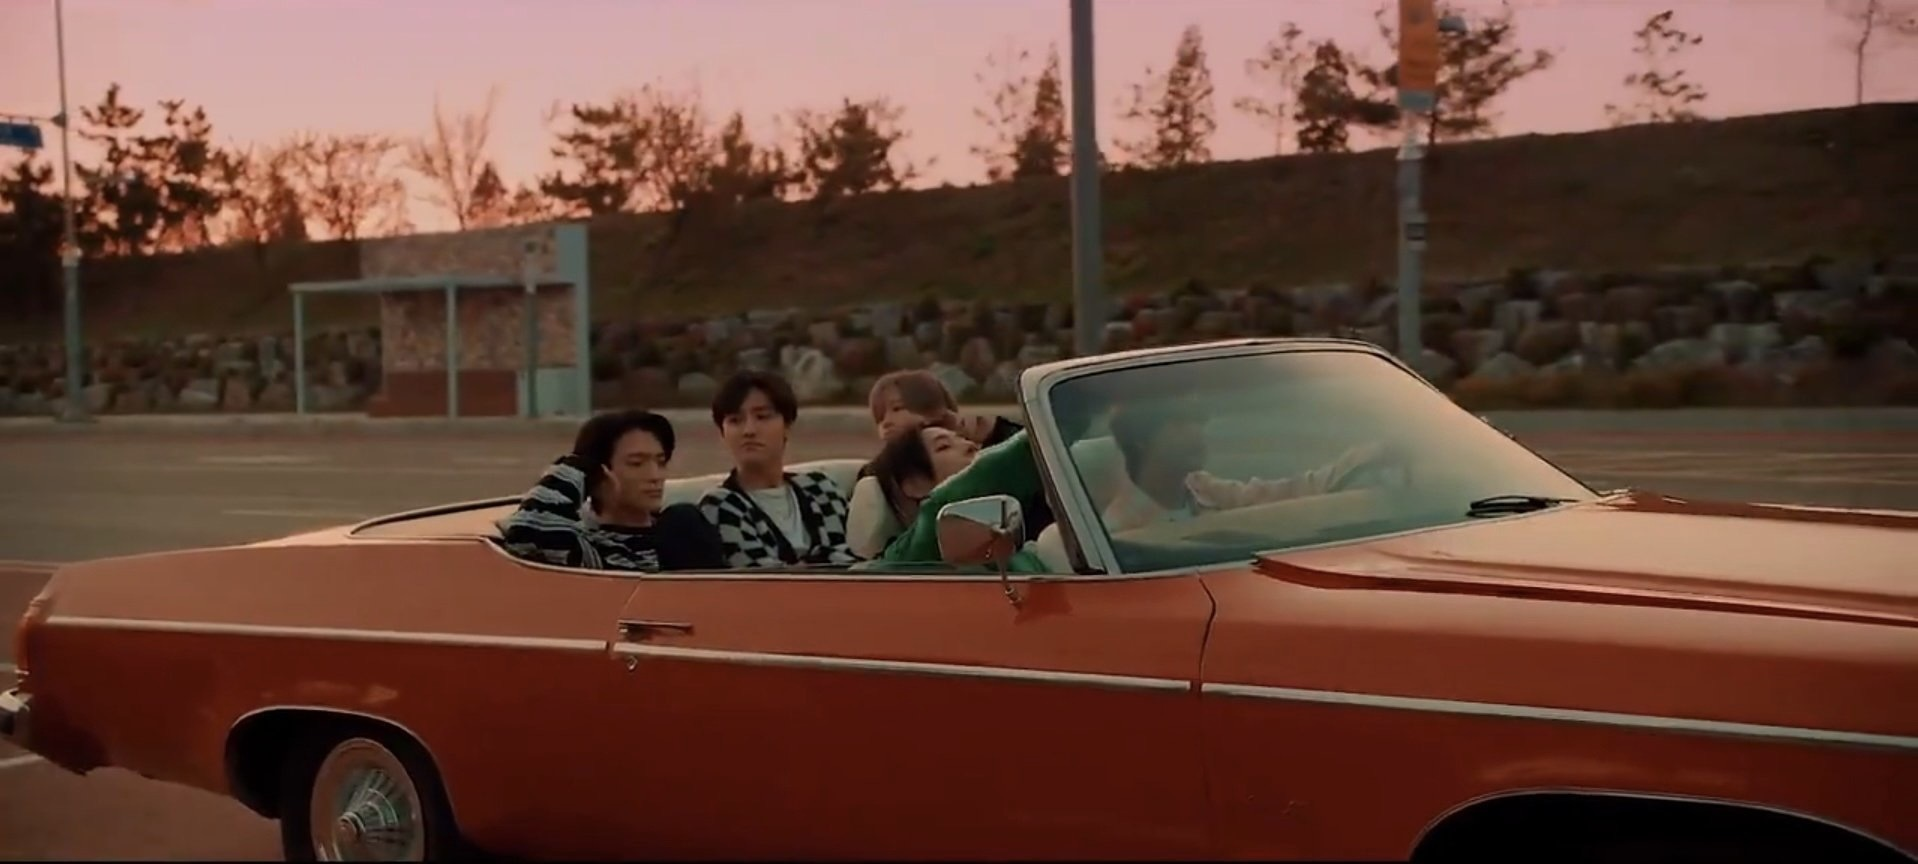 NCT Dream Dive Into You in red car